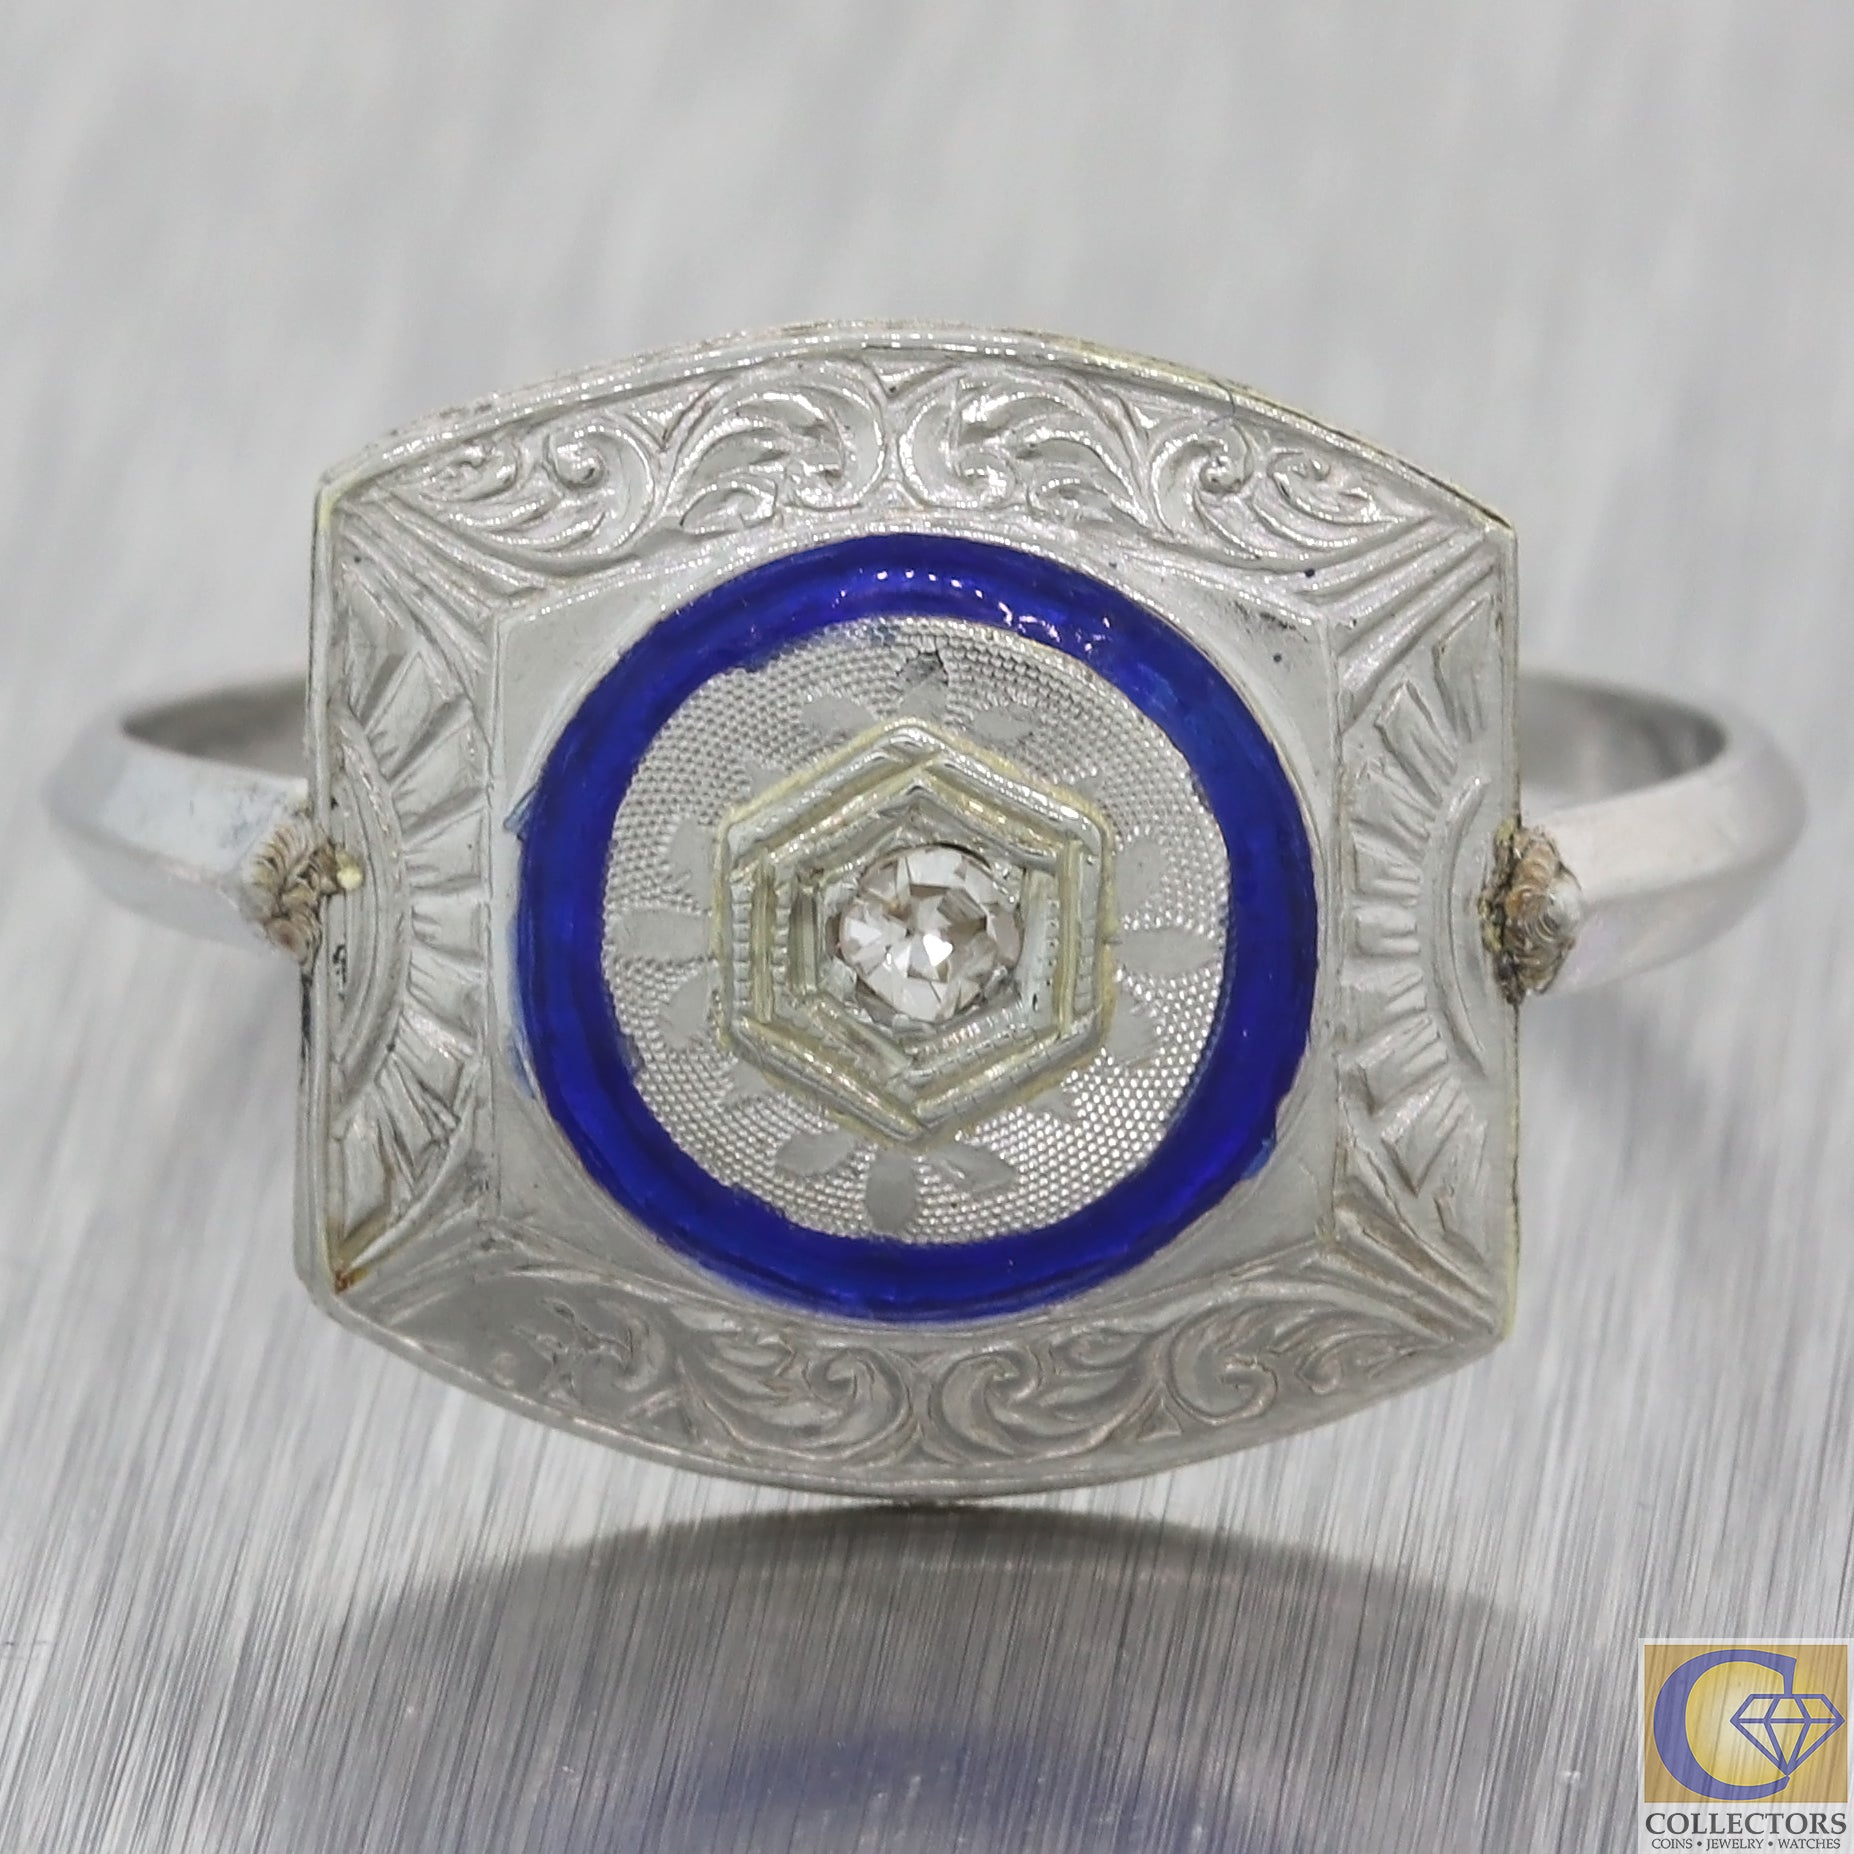 1920s Antique Art Deco Platinum Diamond Blue Enamel Wide Ring